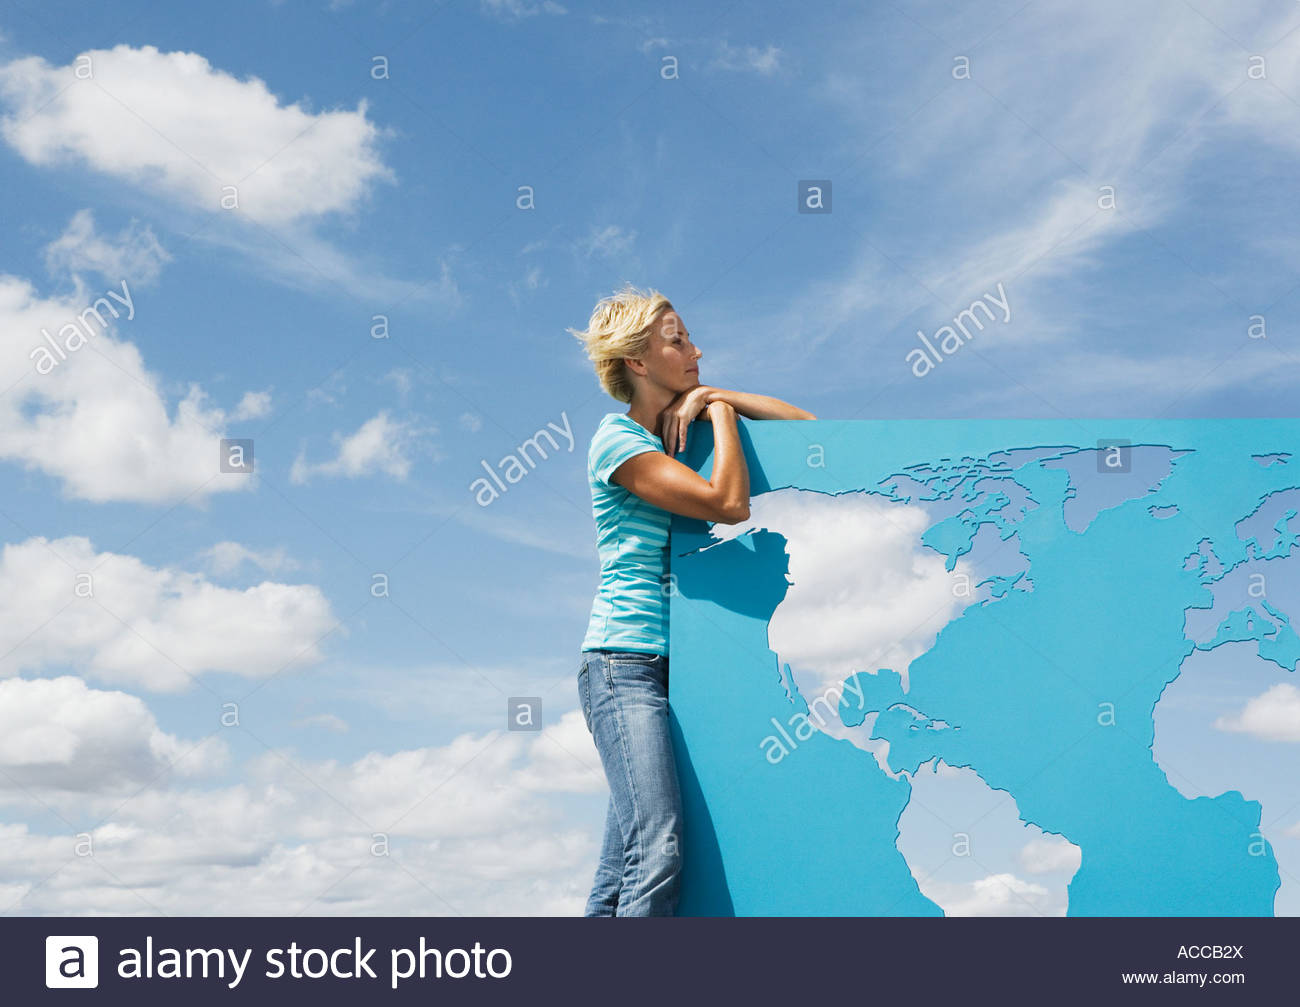 Woman leaning on world map outdoors Photo Stock